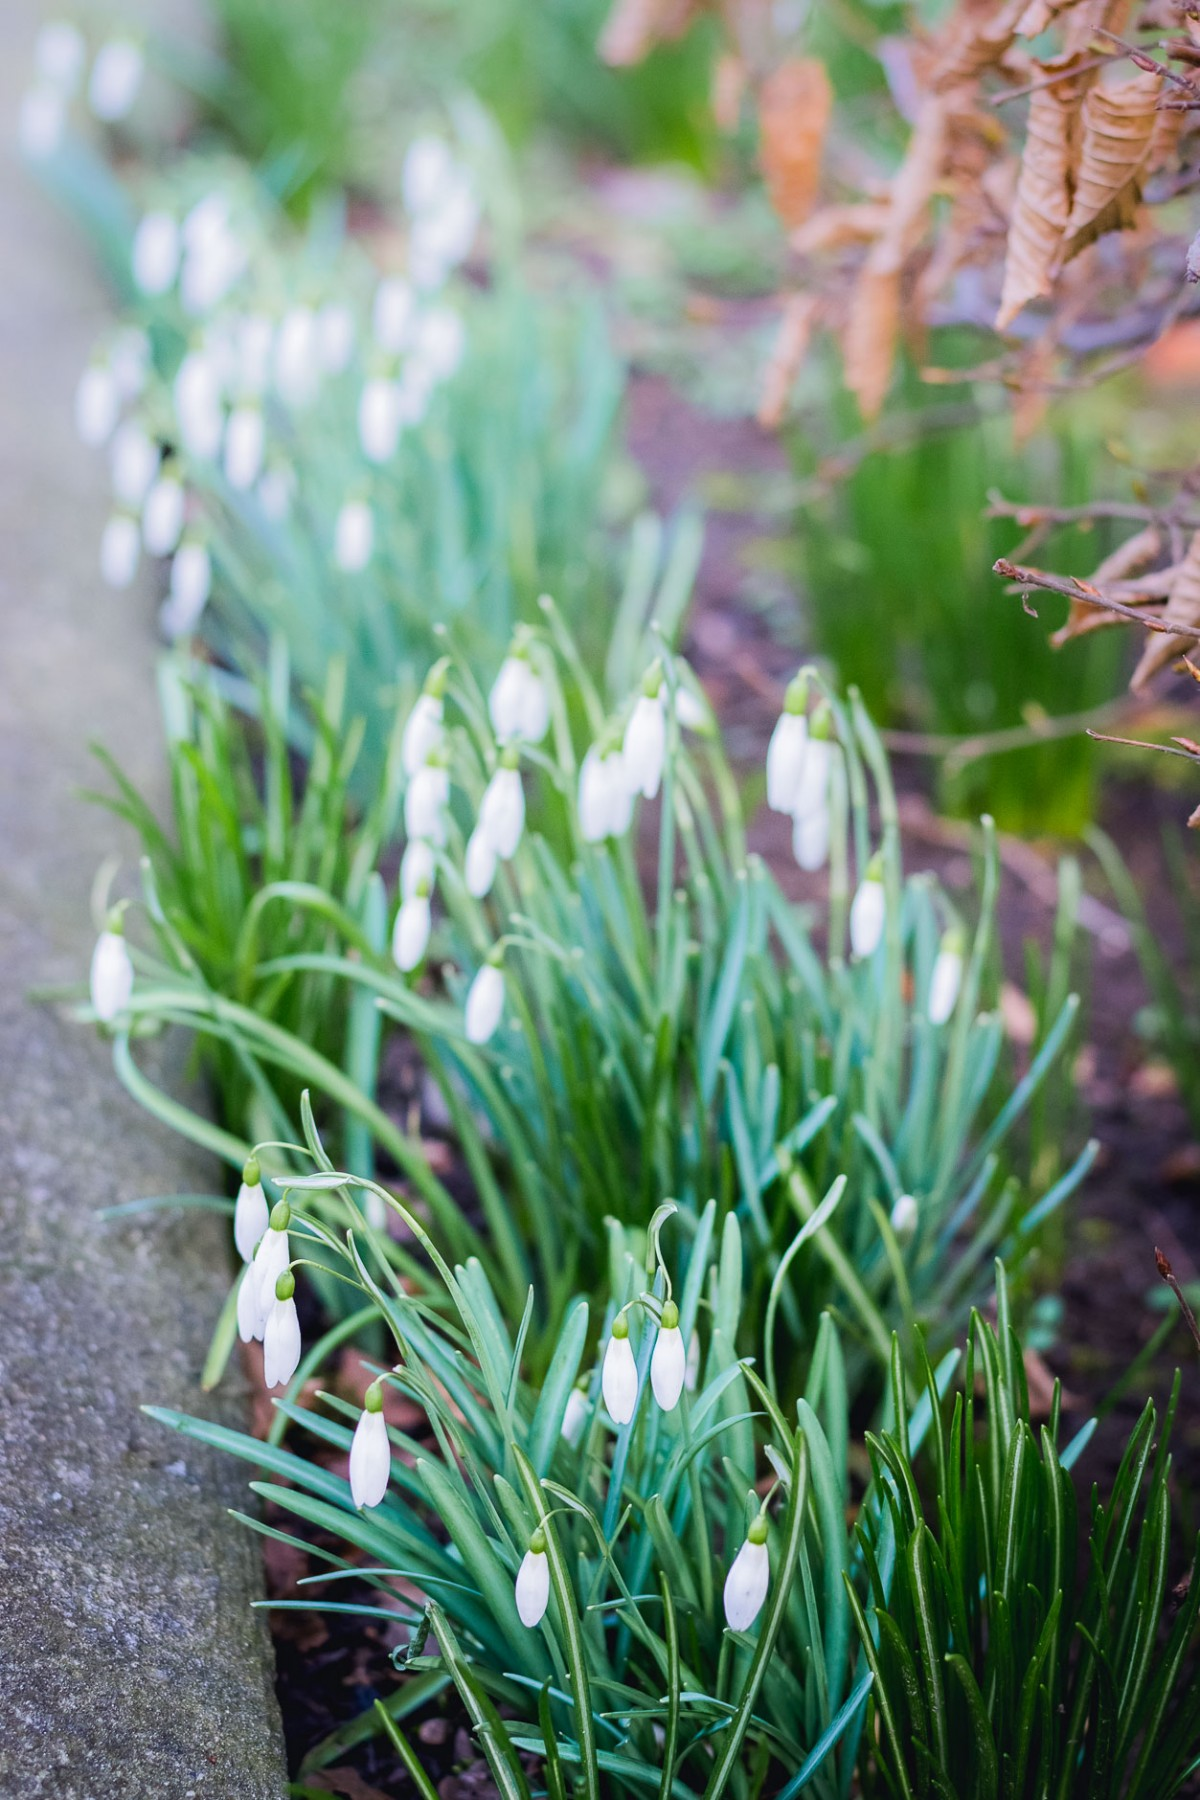 Snowdrops in Göttingen, Germany